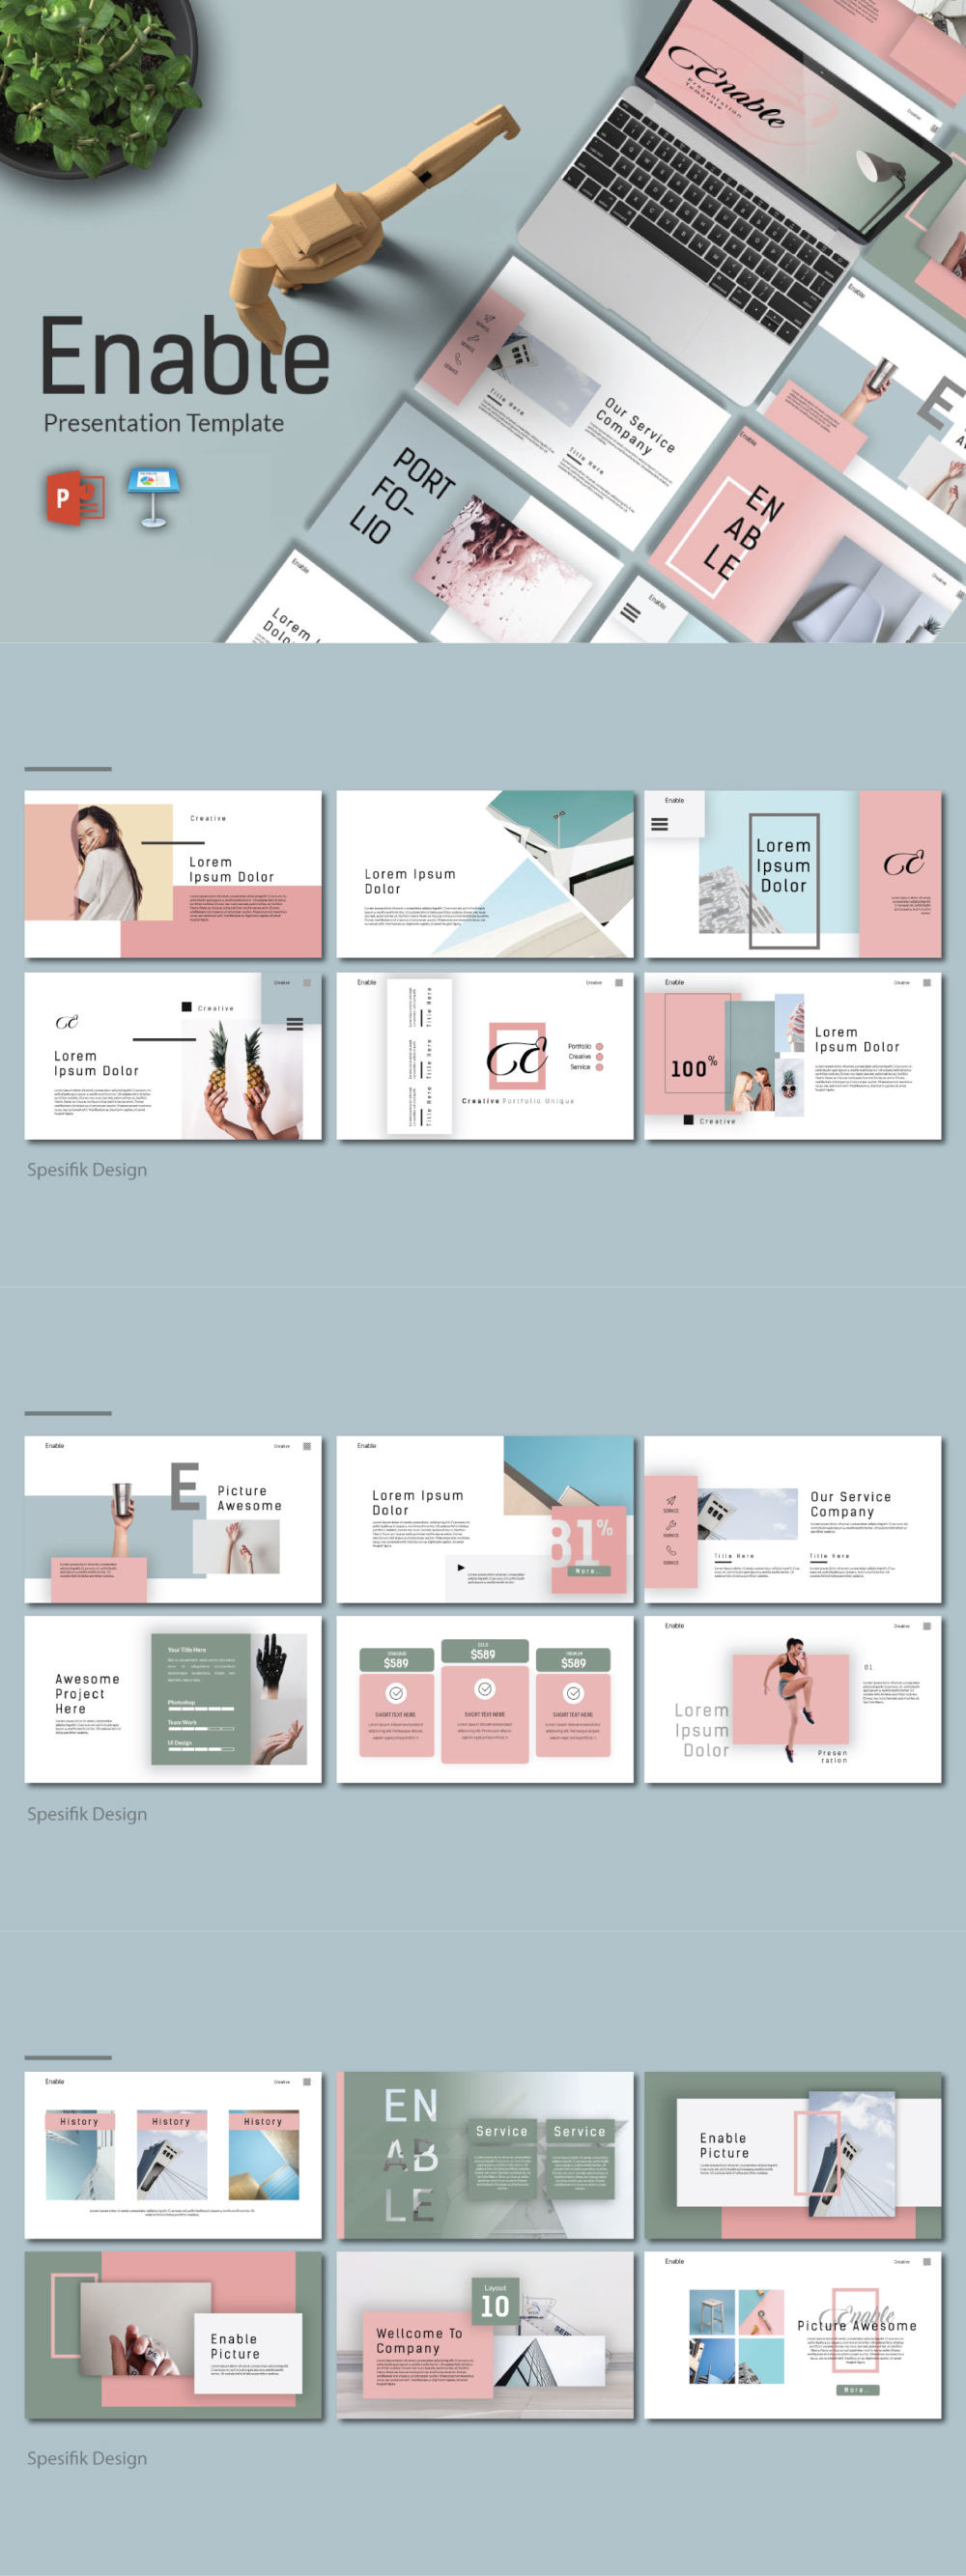 Enable - Modern Presentation Template full preview